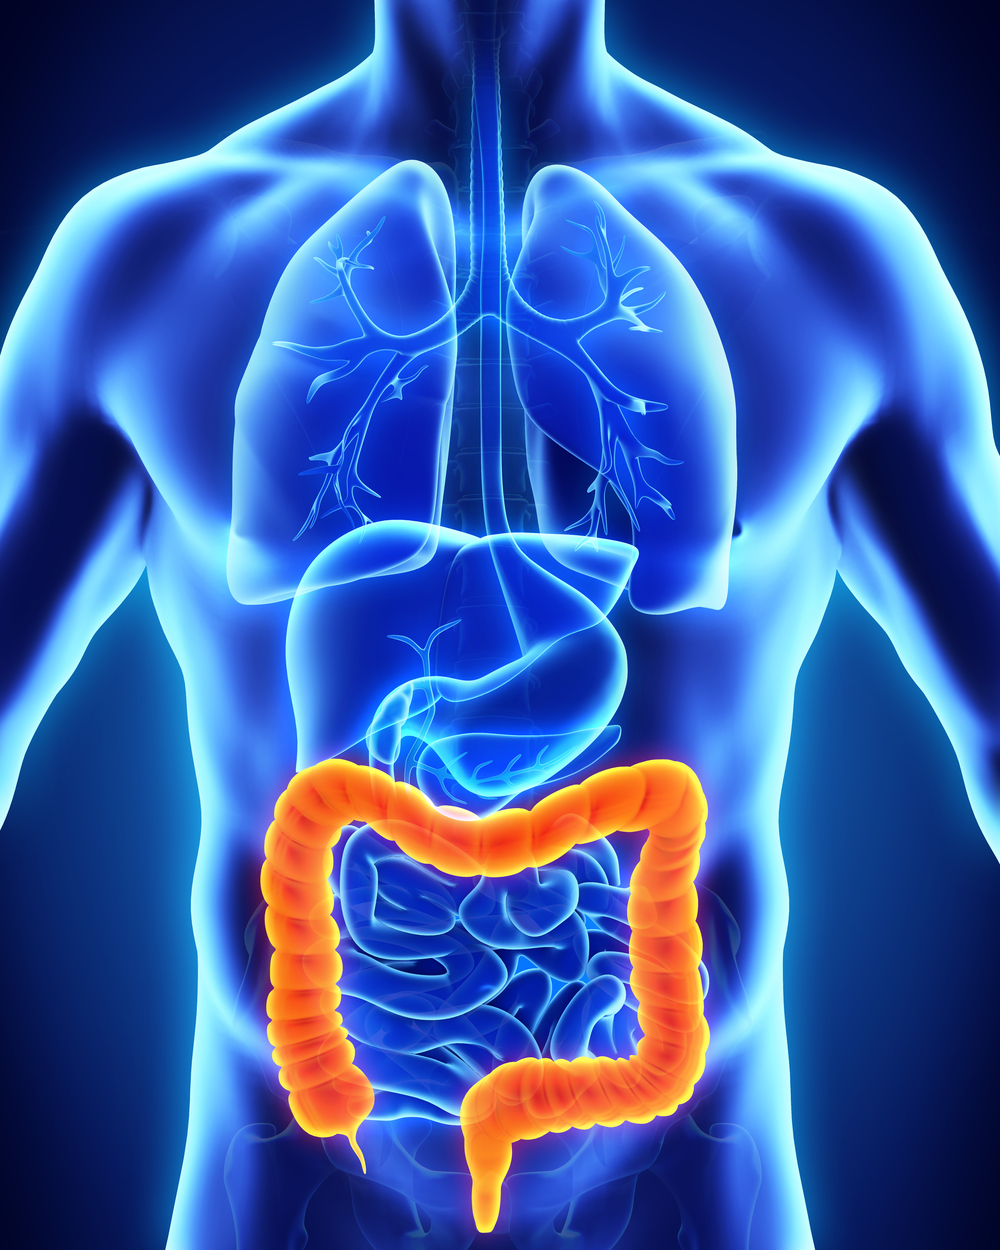 colonics-can-decrease-risk-of-colon-cancer